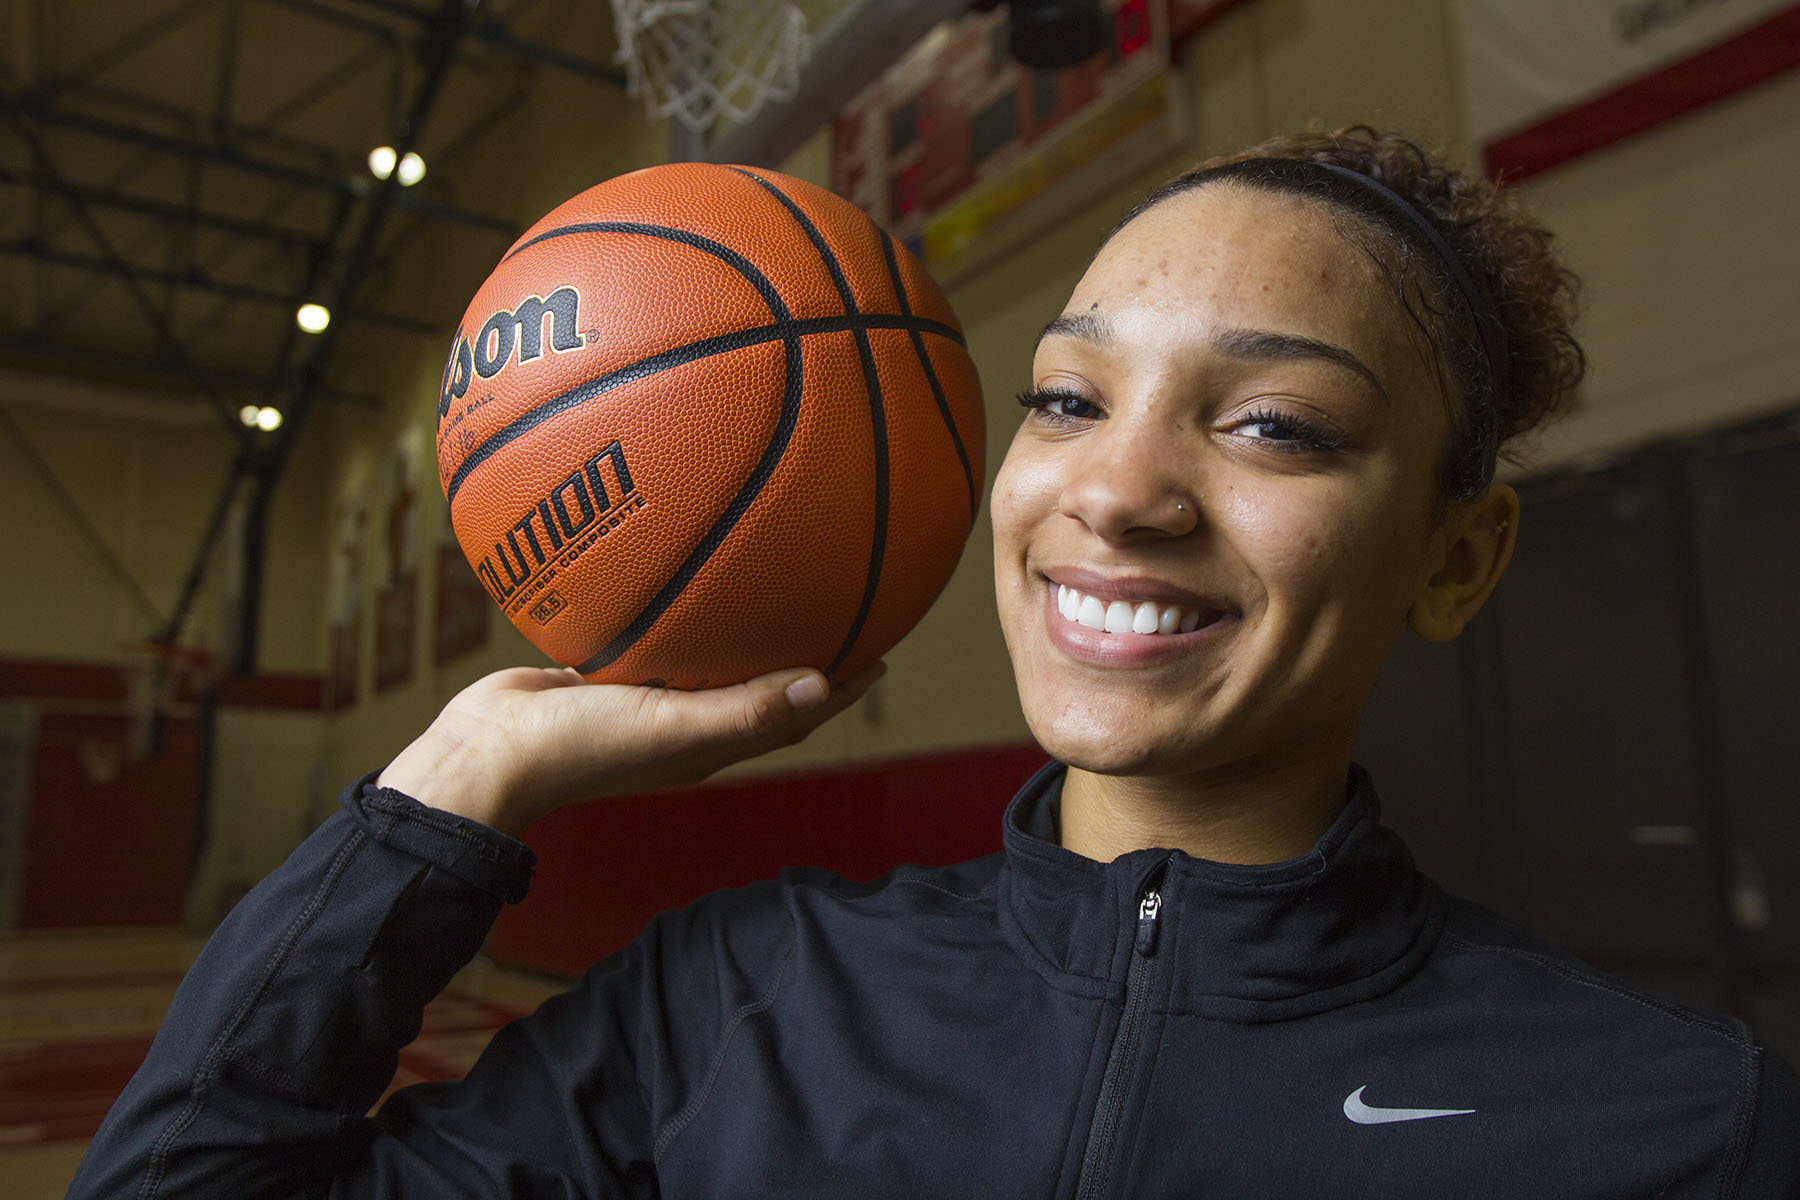 Destinee King, City College basketball player, on Friday, Feb. 3, 2017, in the Sports Pavilion at Santa Barbara City College. King won the Santa Barbara Round Table Athlete of The Week award.